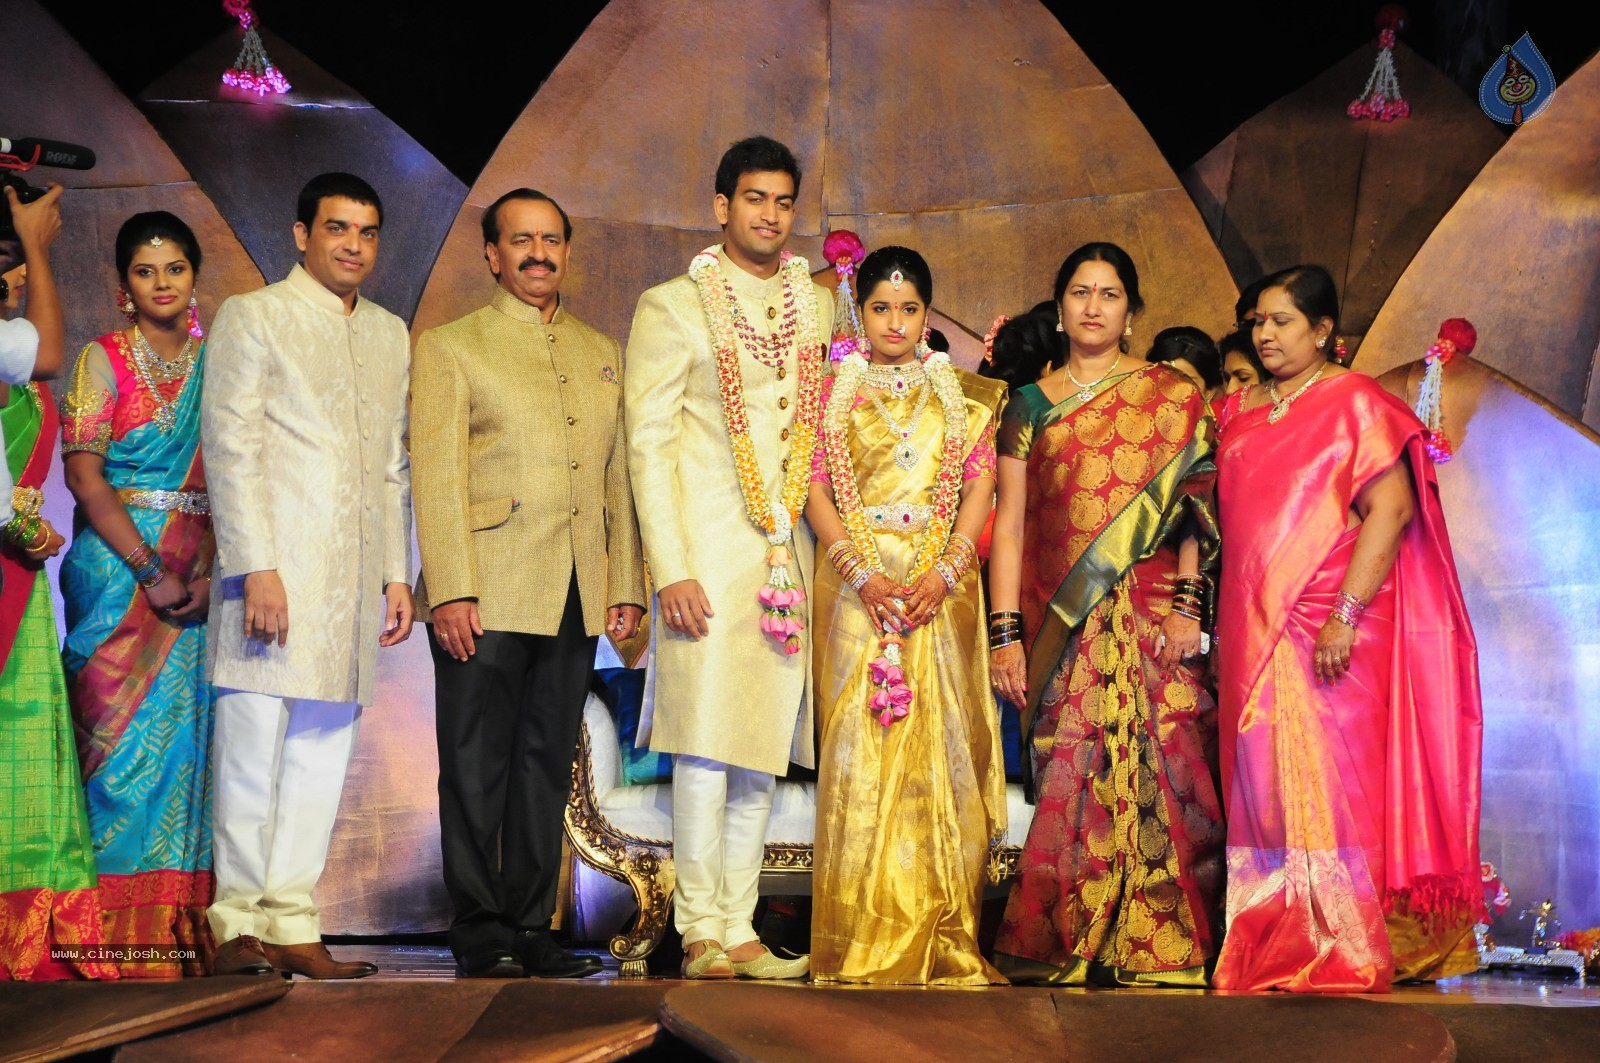 Dil Raju Daughter Hanshitha Engagement 02 Photo 19 Of 83